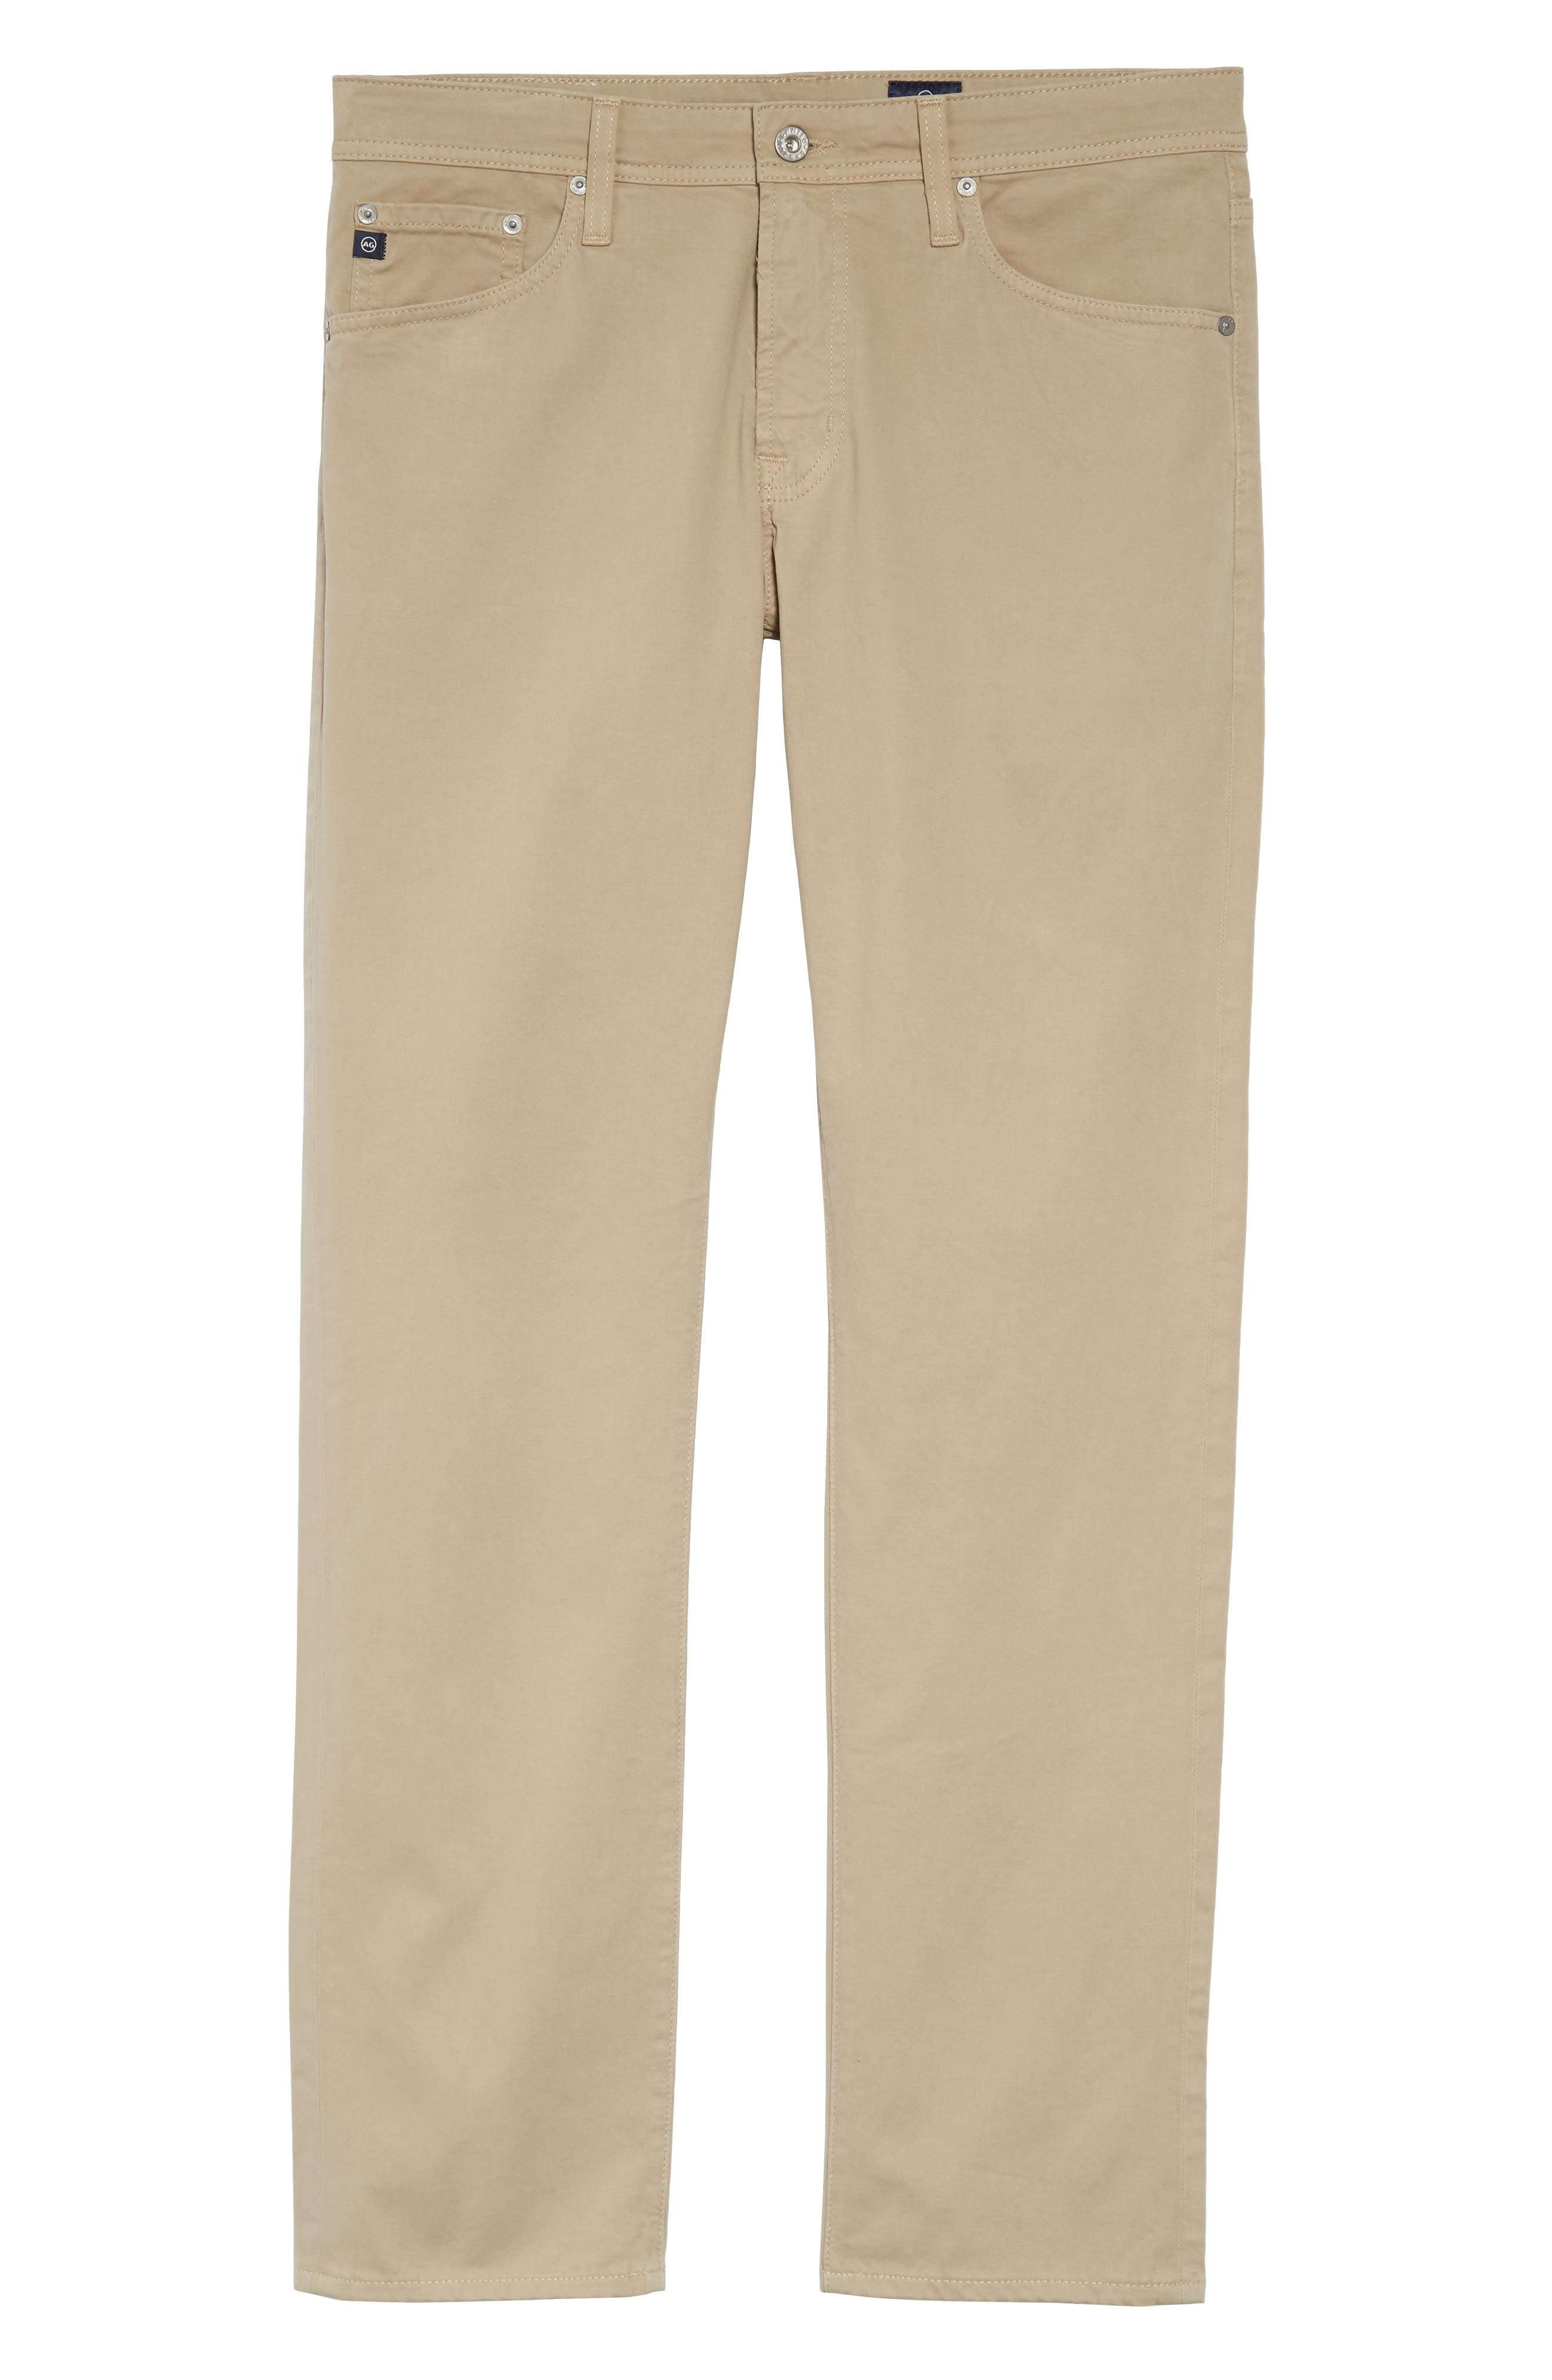 Graduate SUD Slim Straight Leg Pants,                             Main thumbnail 1, color,                             259